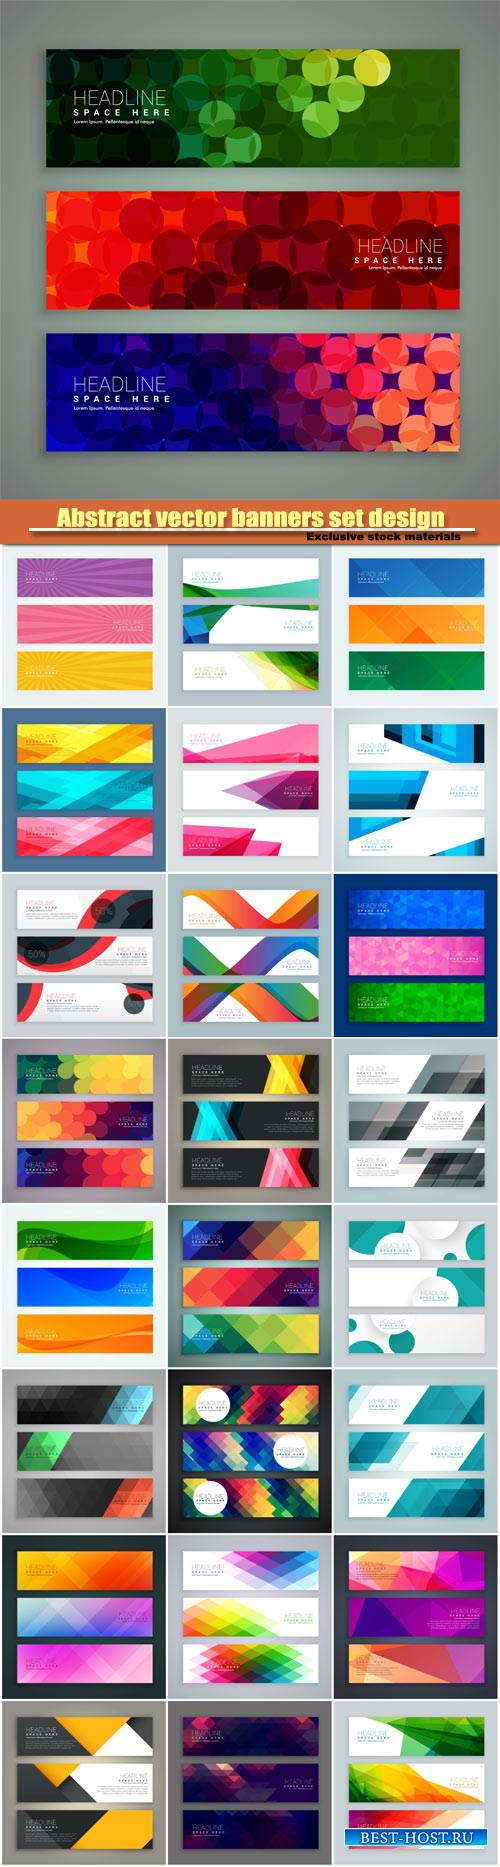 Abstract vector banners set design made with circles